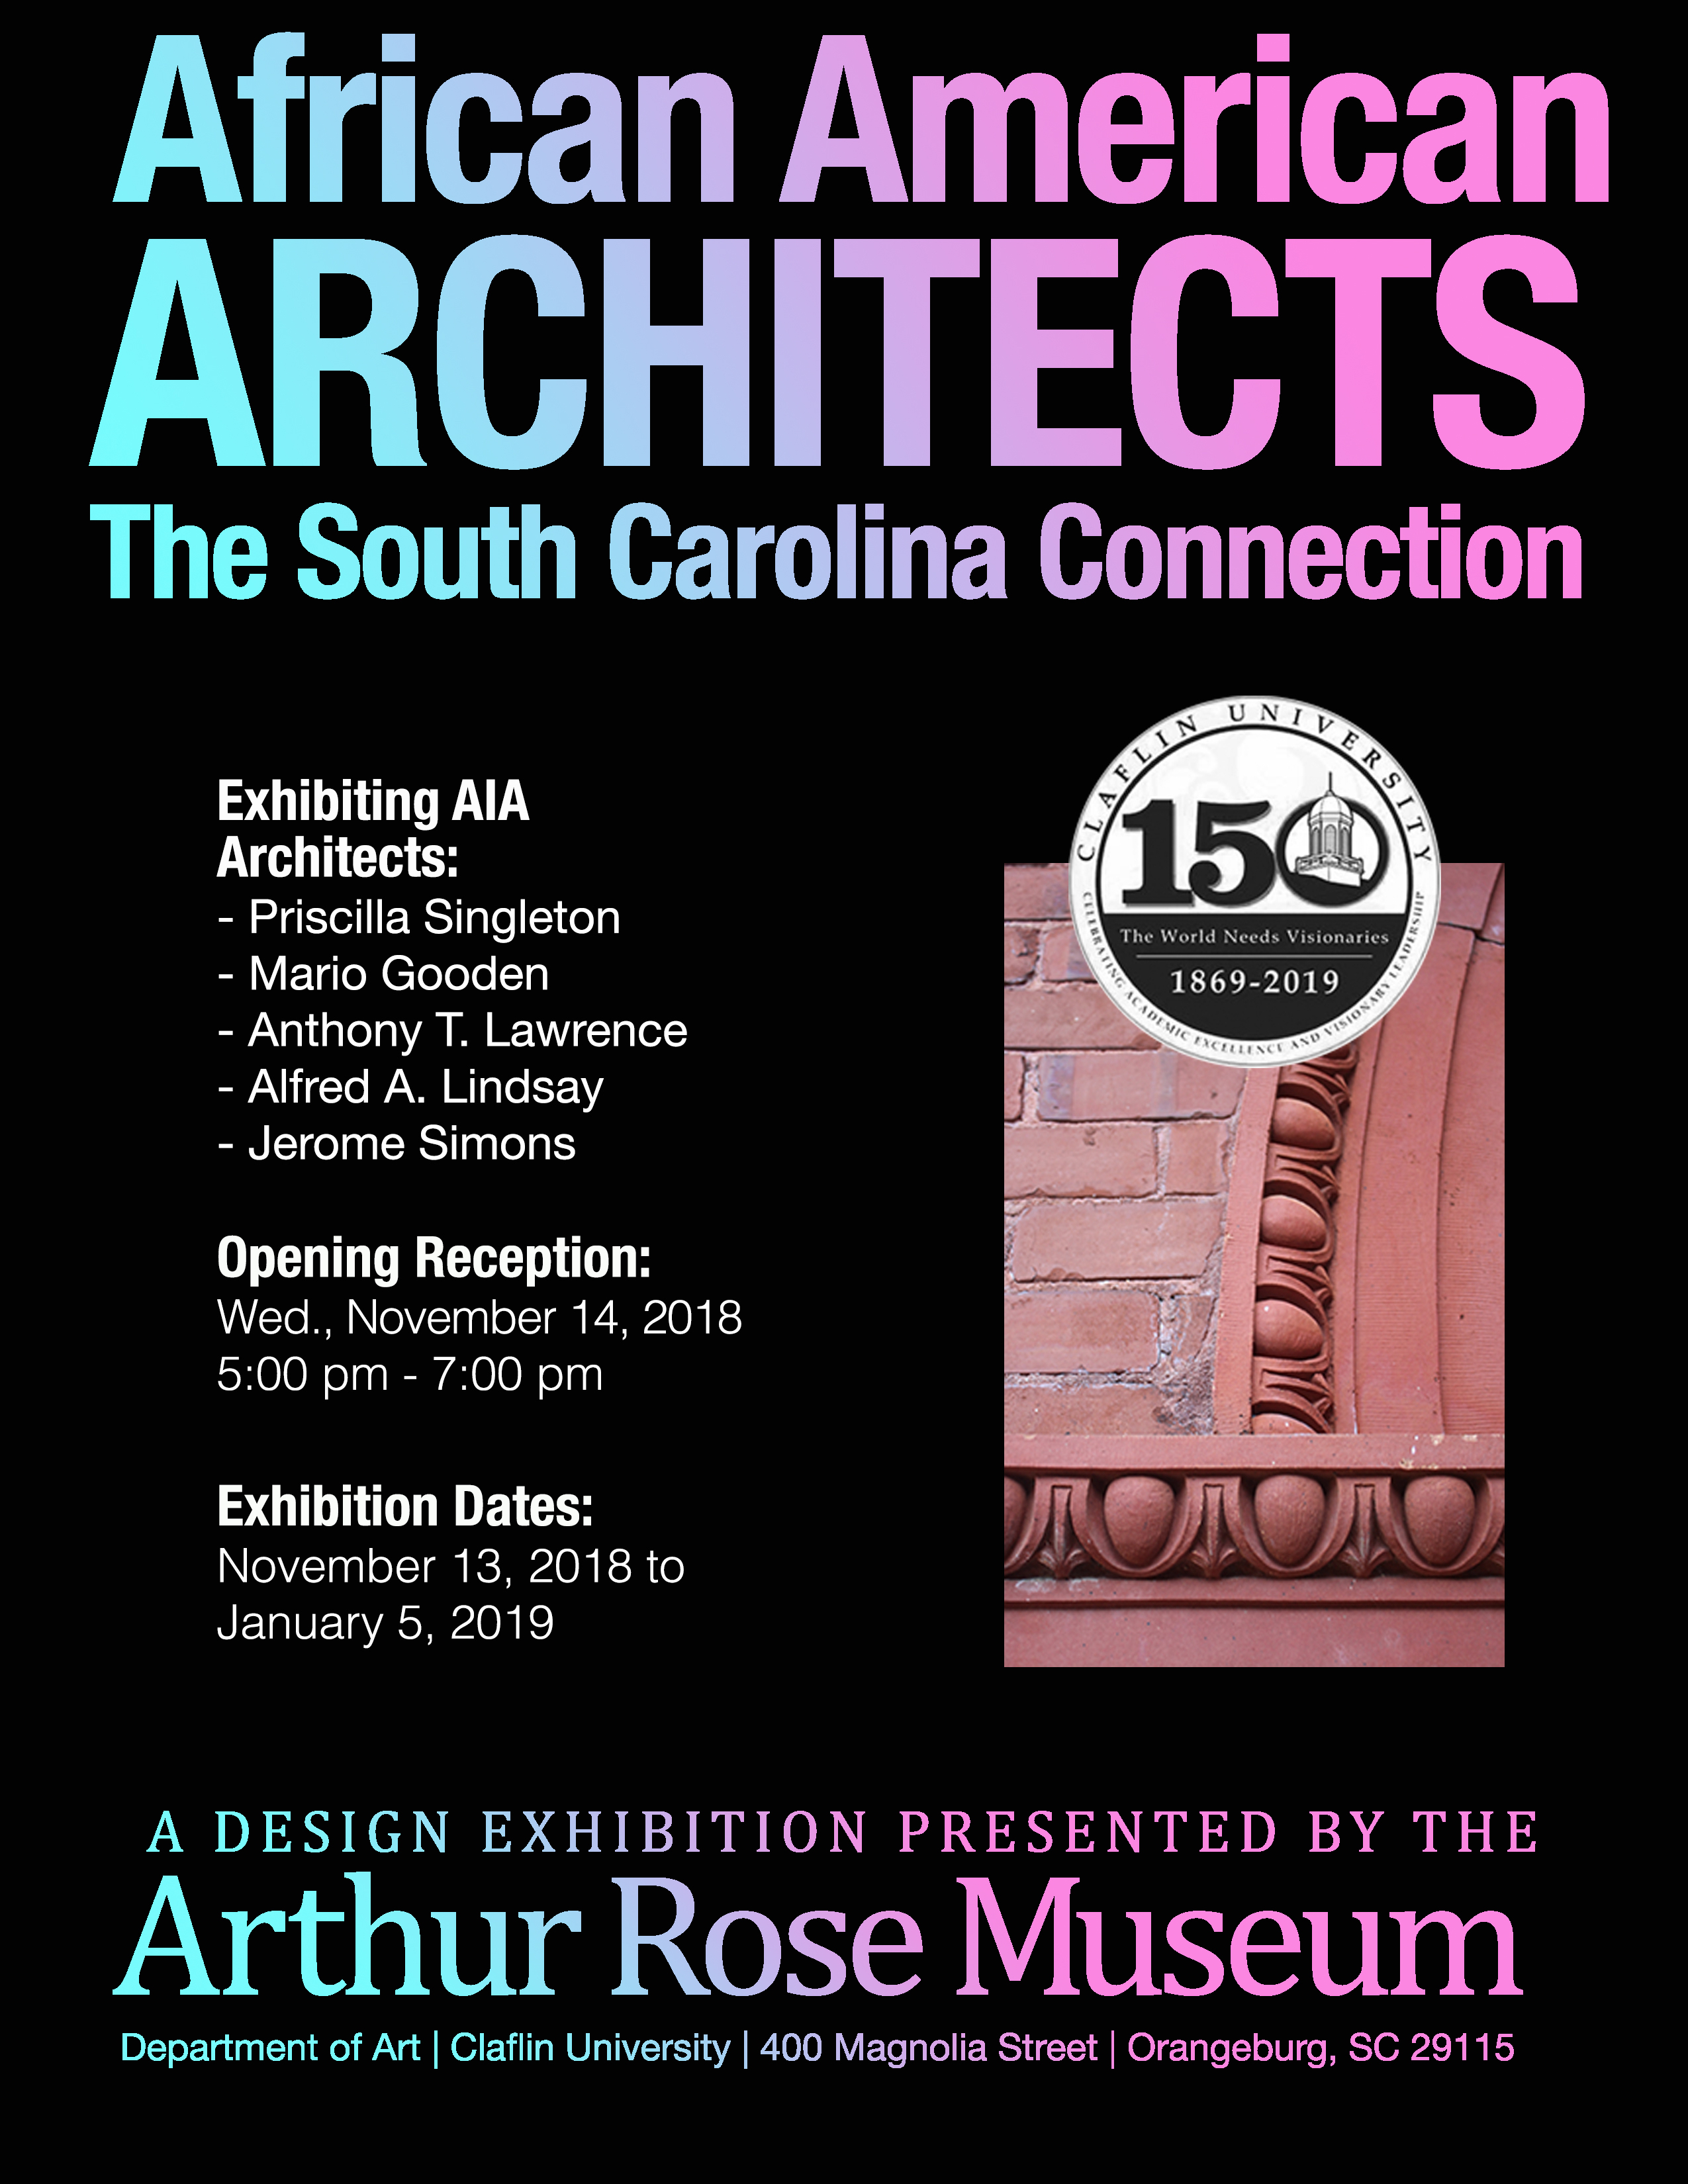 AA Architects Exhibit